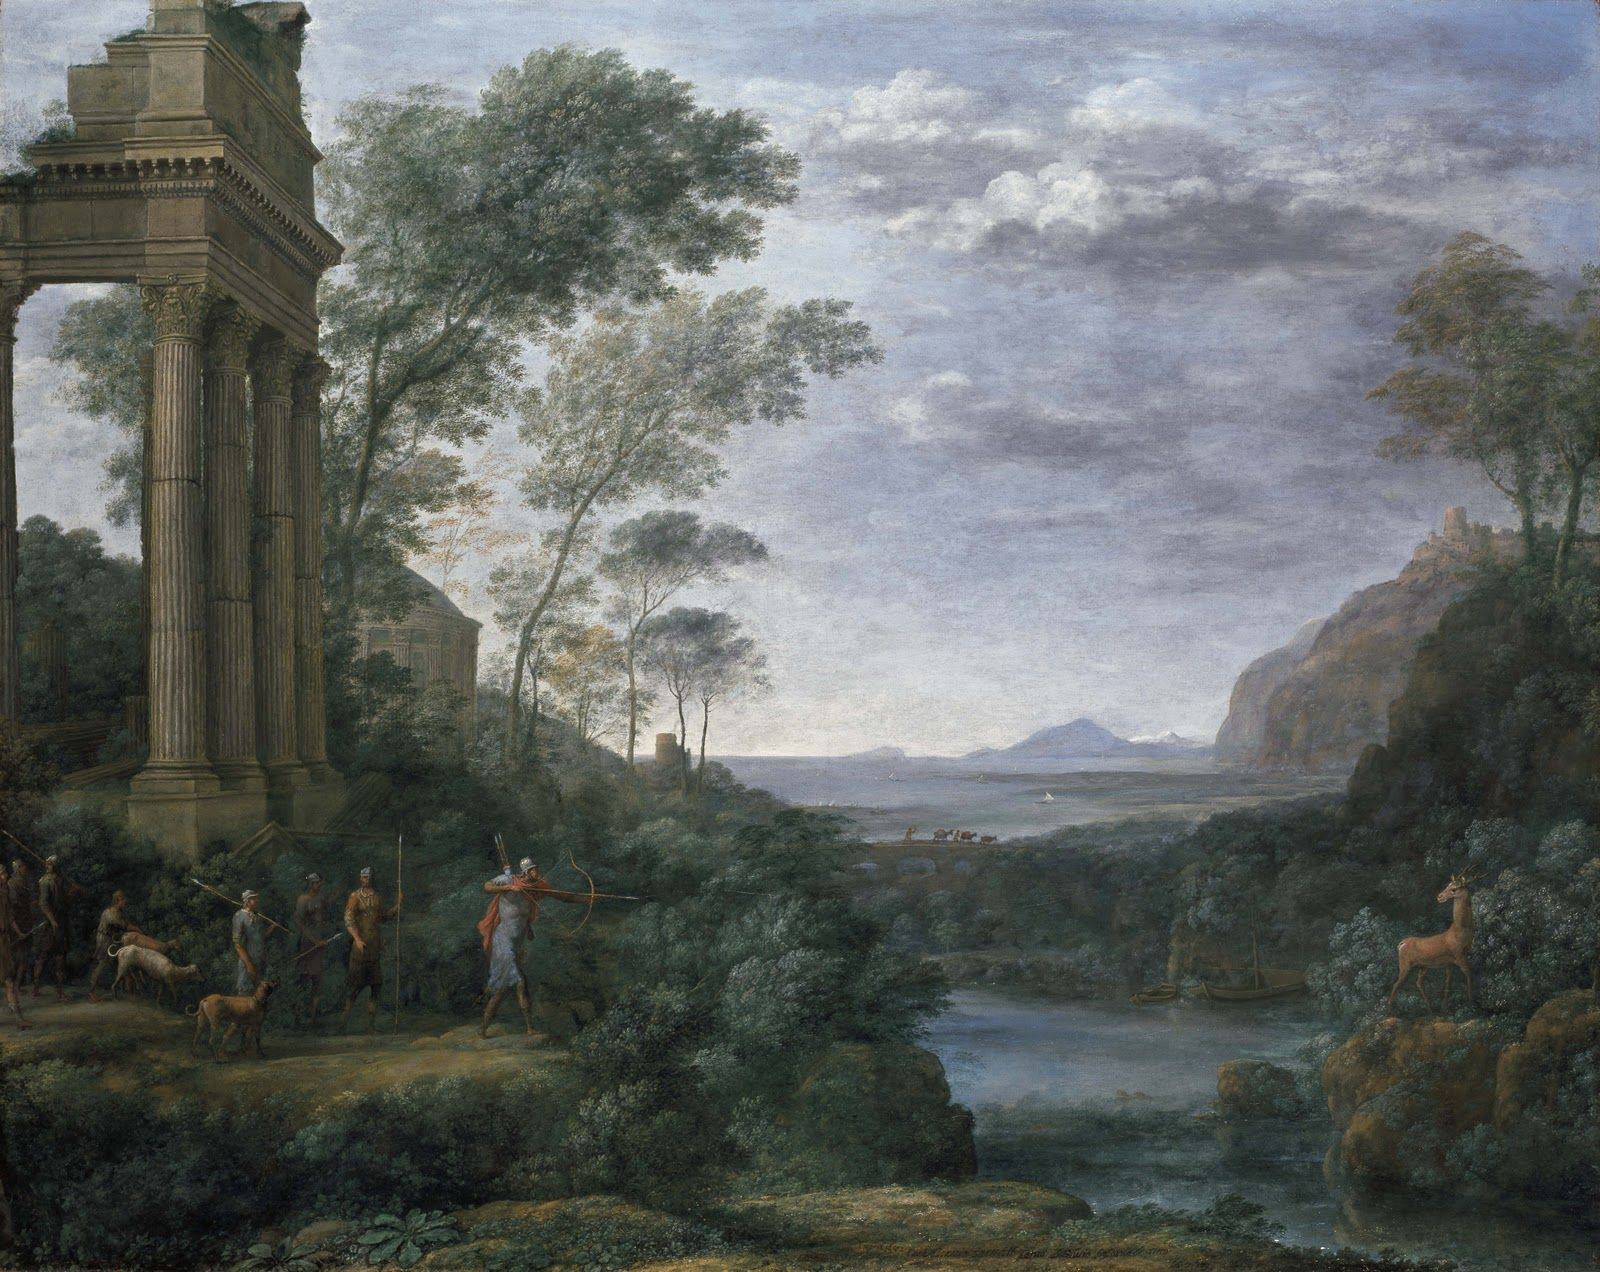 Landscape Painting Wikipedia The Free Encyclopedia Landscape Paintings Landscape Scenery Landscape